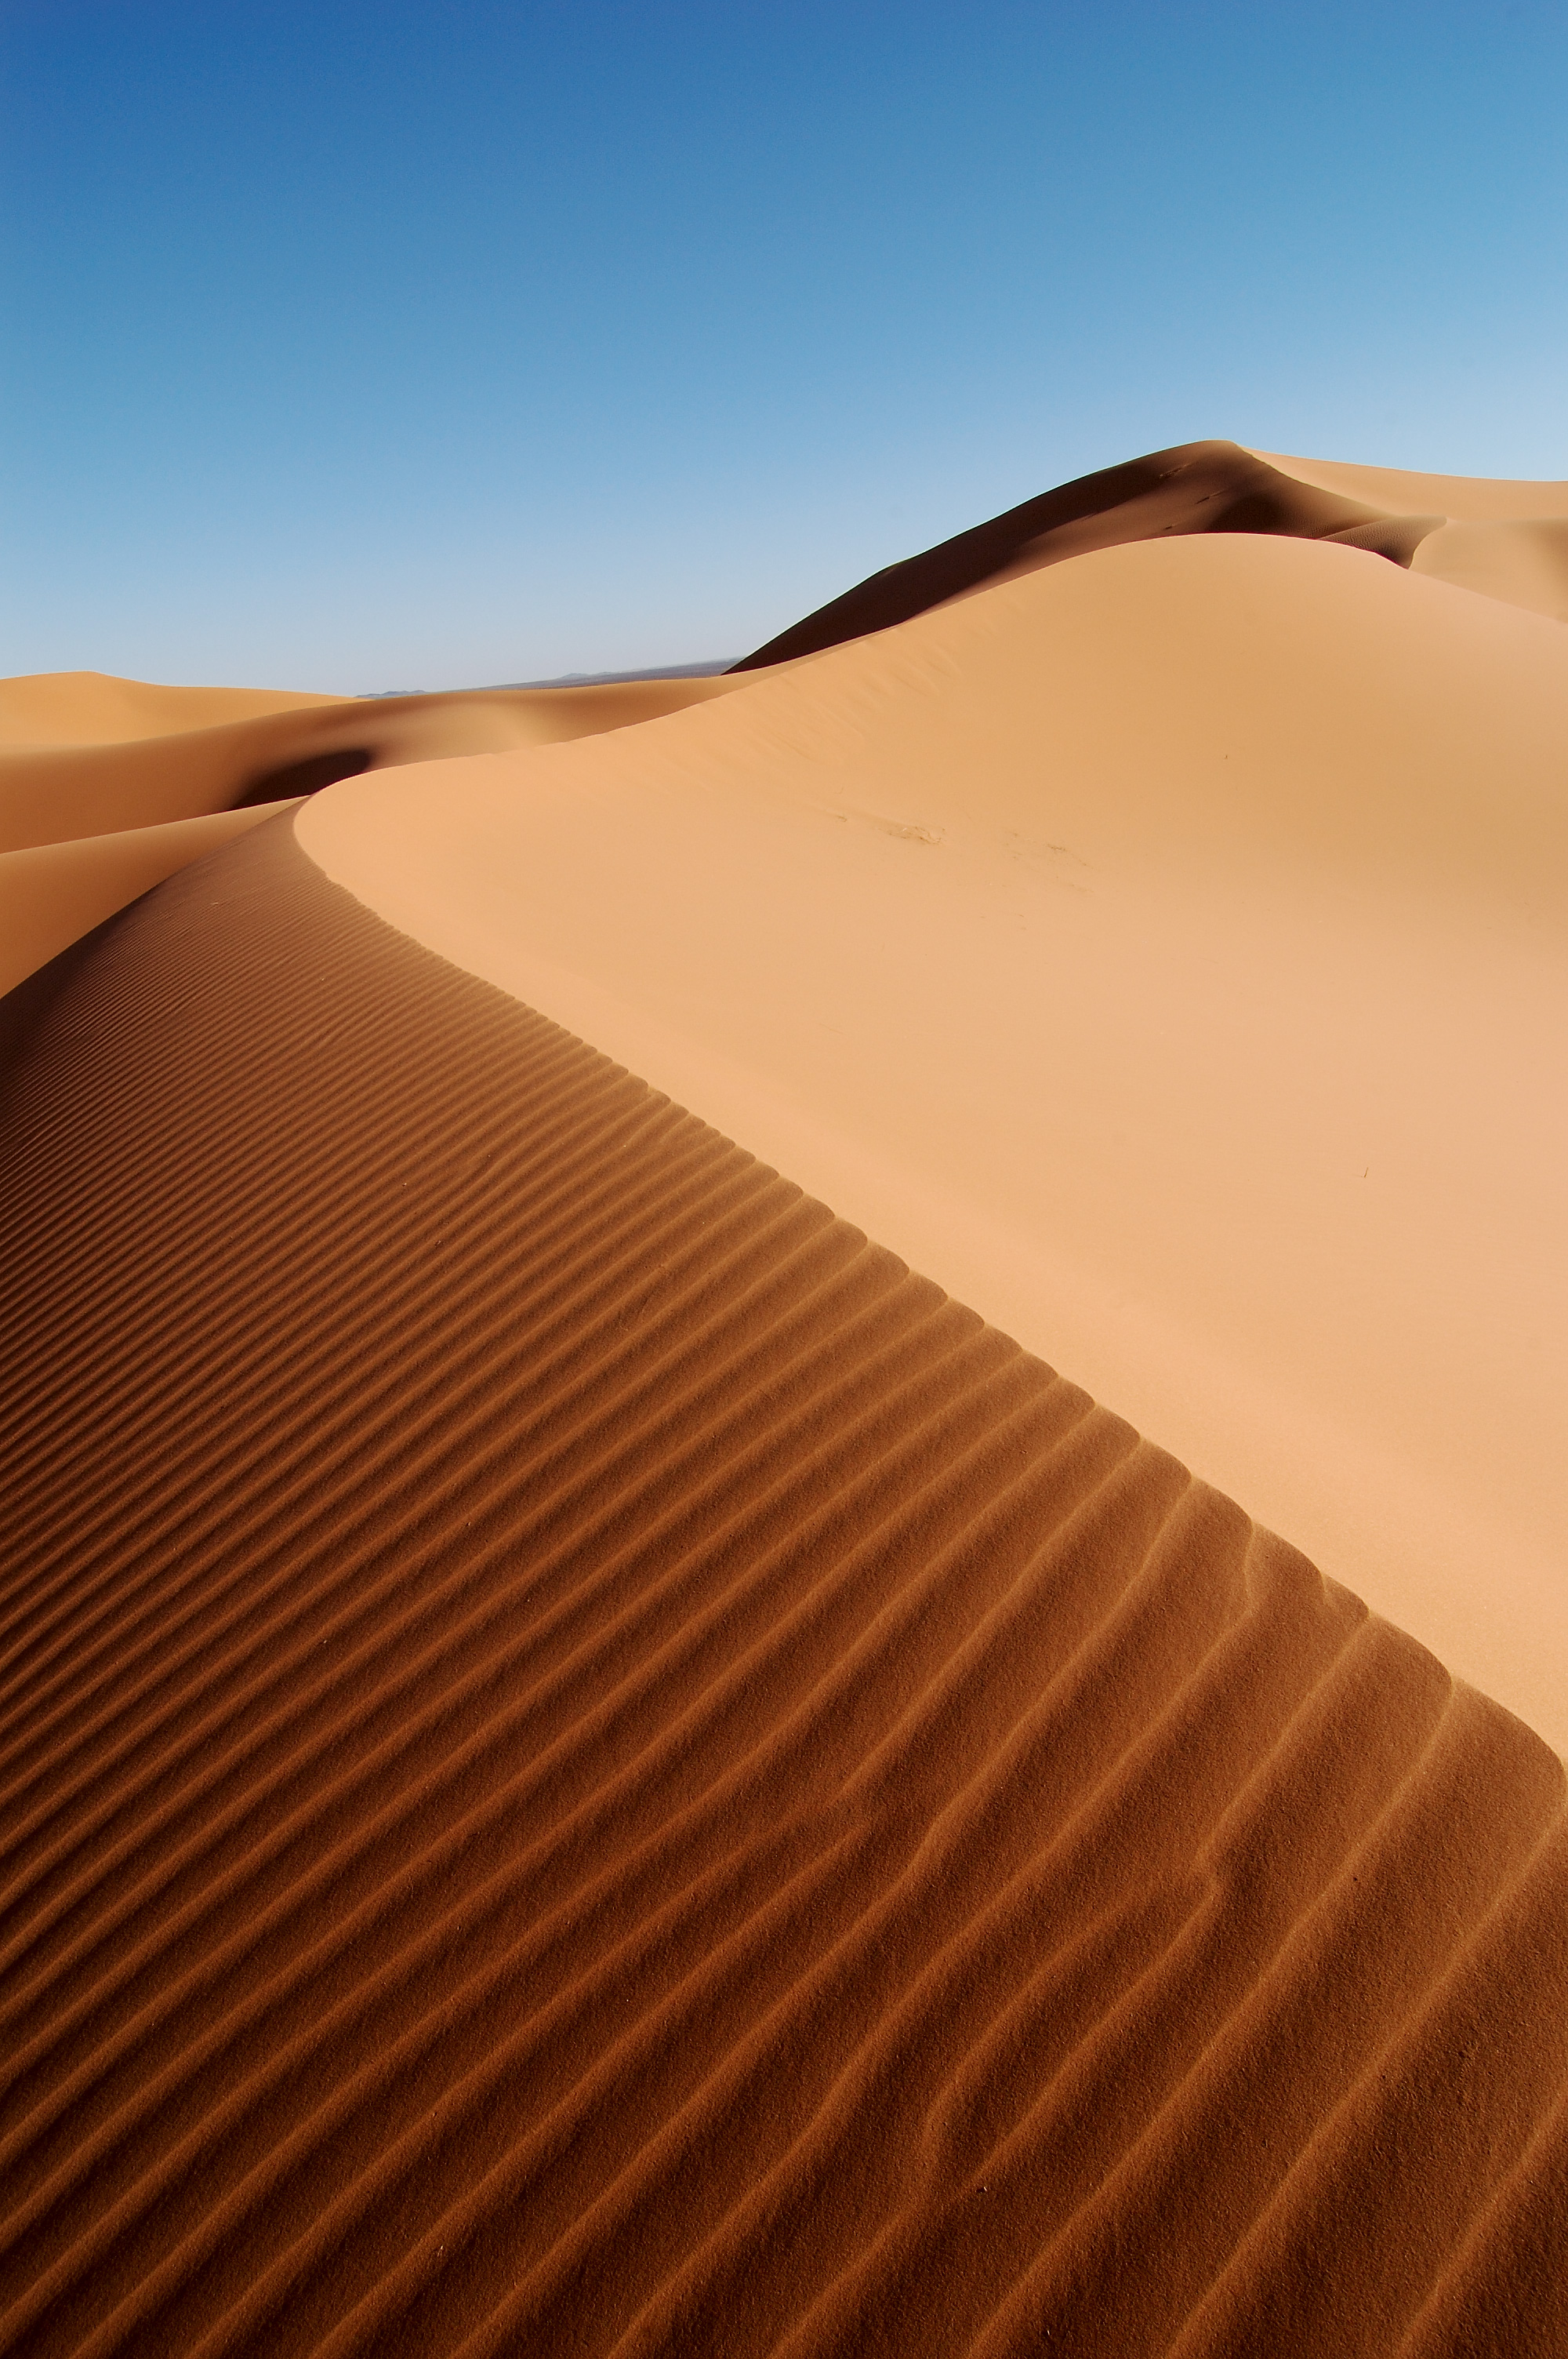 Animated Weather Wallpaper Iphone 30 Fantastic Photos Of Athabasca Sand Dunes Places